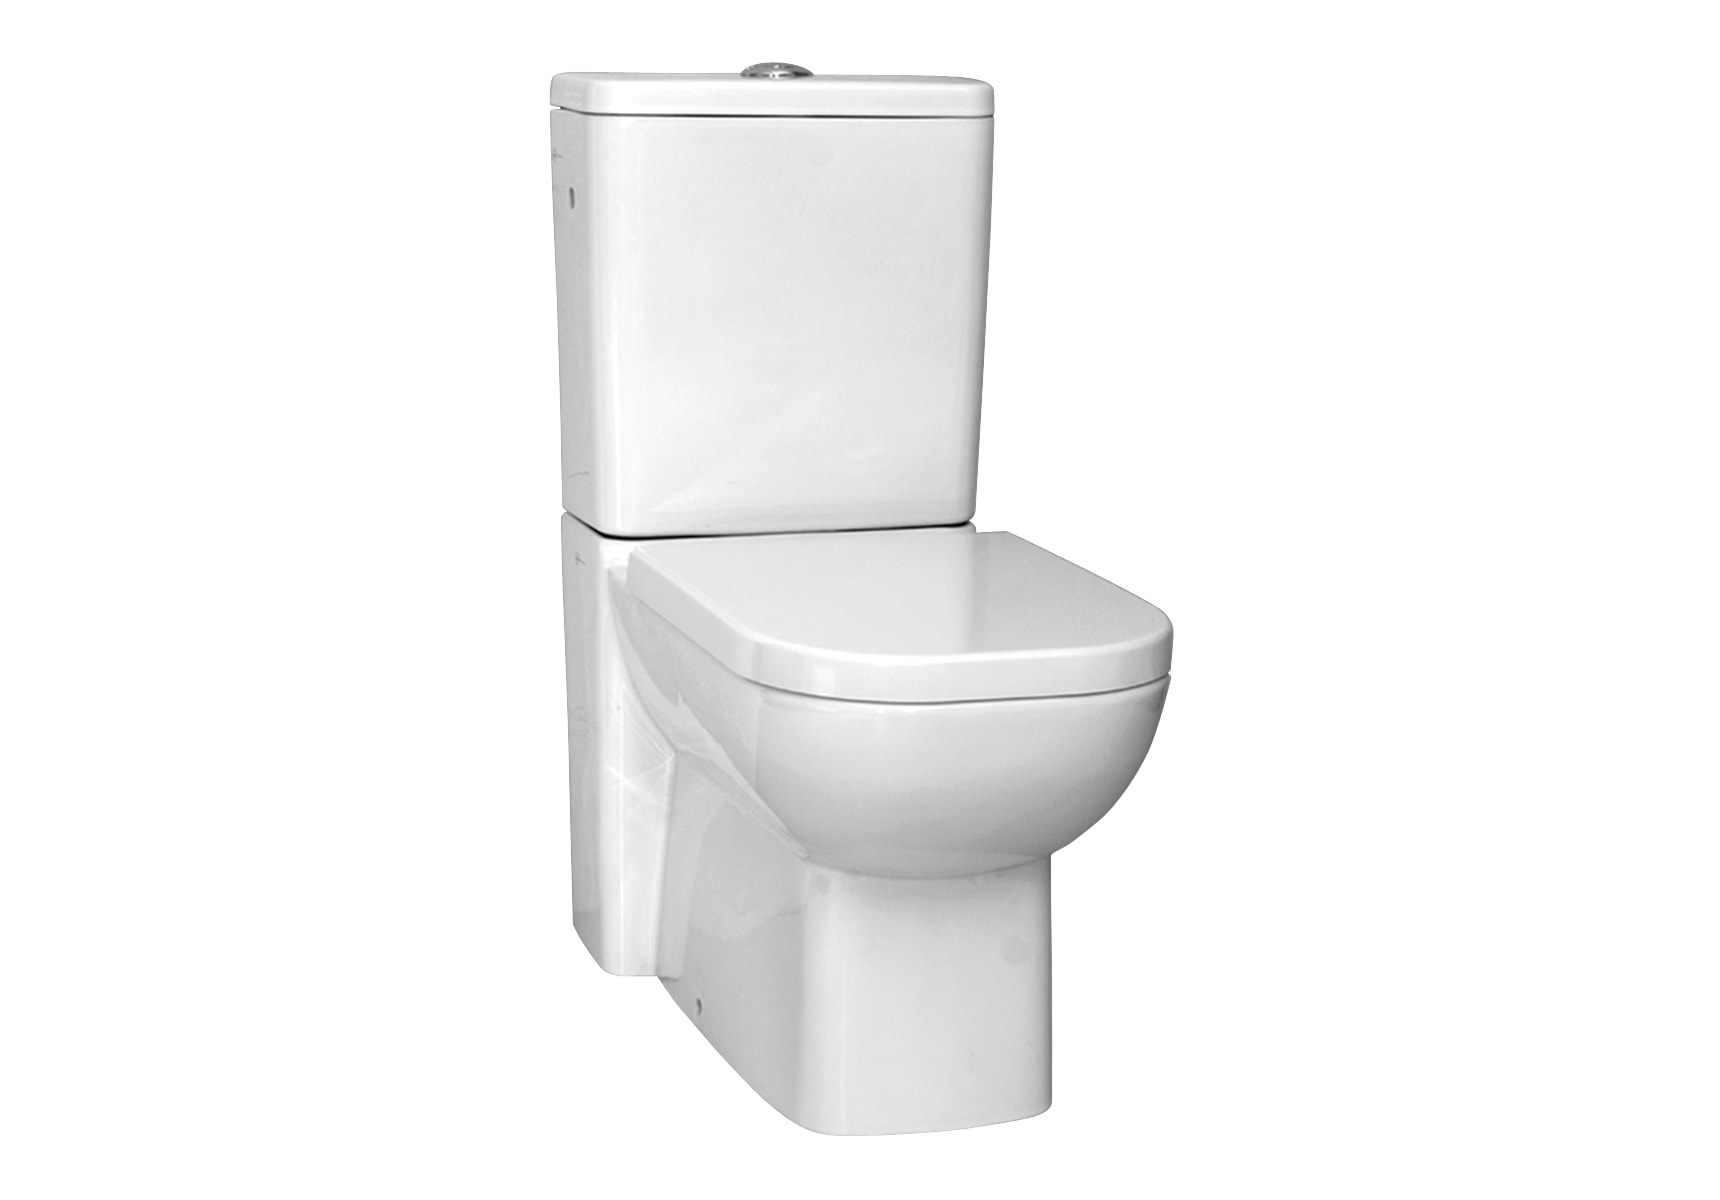 Back-To-Wall Close-Coupled Wc Pan with Universal Outlet